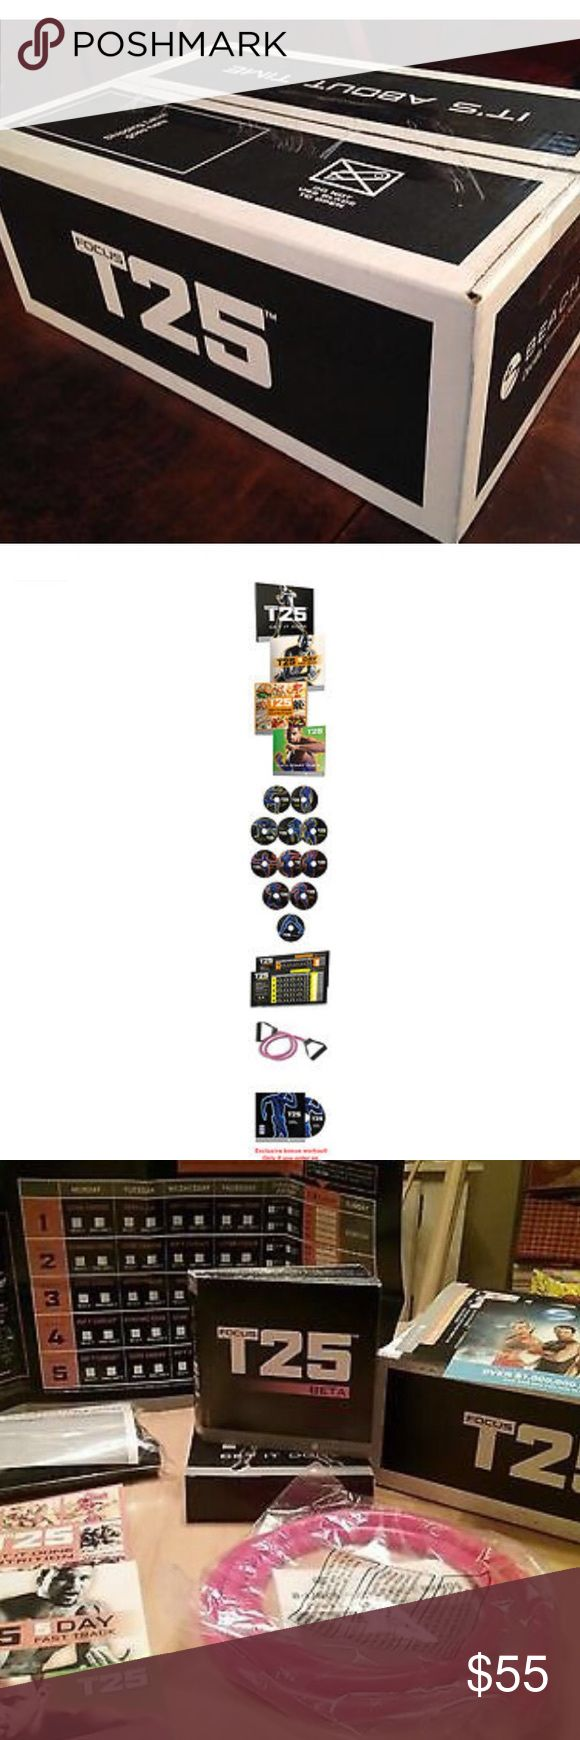 Focus T25/ Shaun T Beach body Focus T 25 by Fitness Guru Shaun T. COMPLETE workout set. BRAND NEW/ FACTORY SEALED BOX. 25 Minutes. 5 Days a Week. 100% Results. Summer's almost here. The time is NOW! Accessories